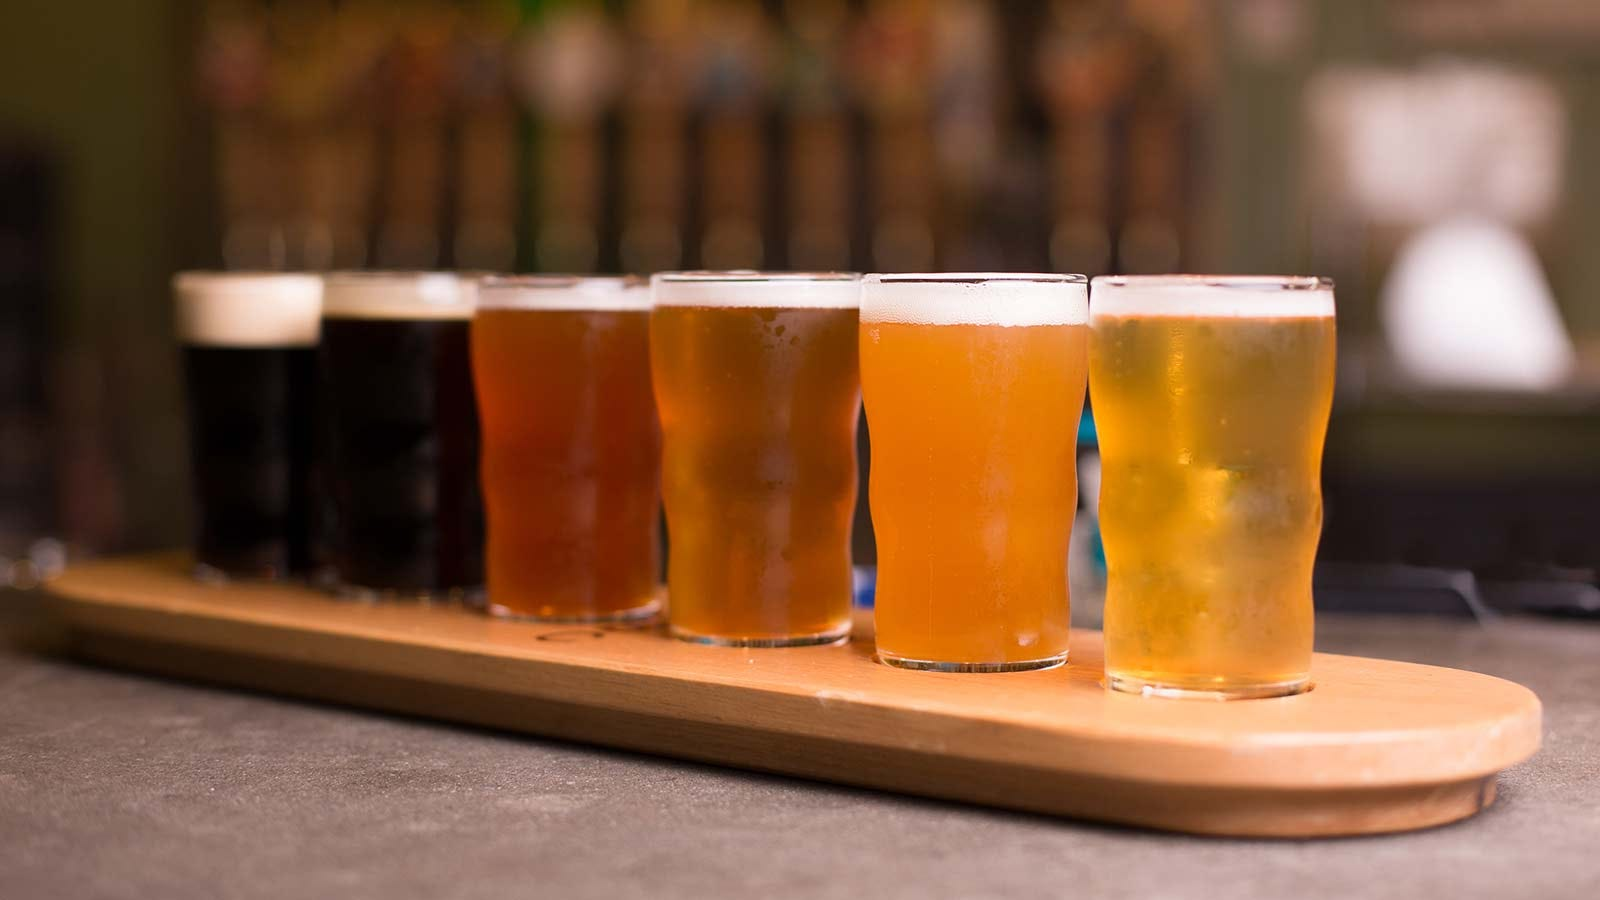 A flight of beers arranged in pint glasses on a plank.